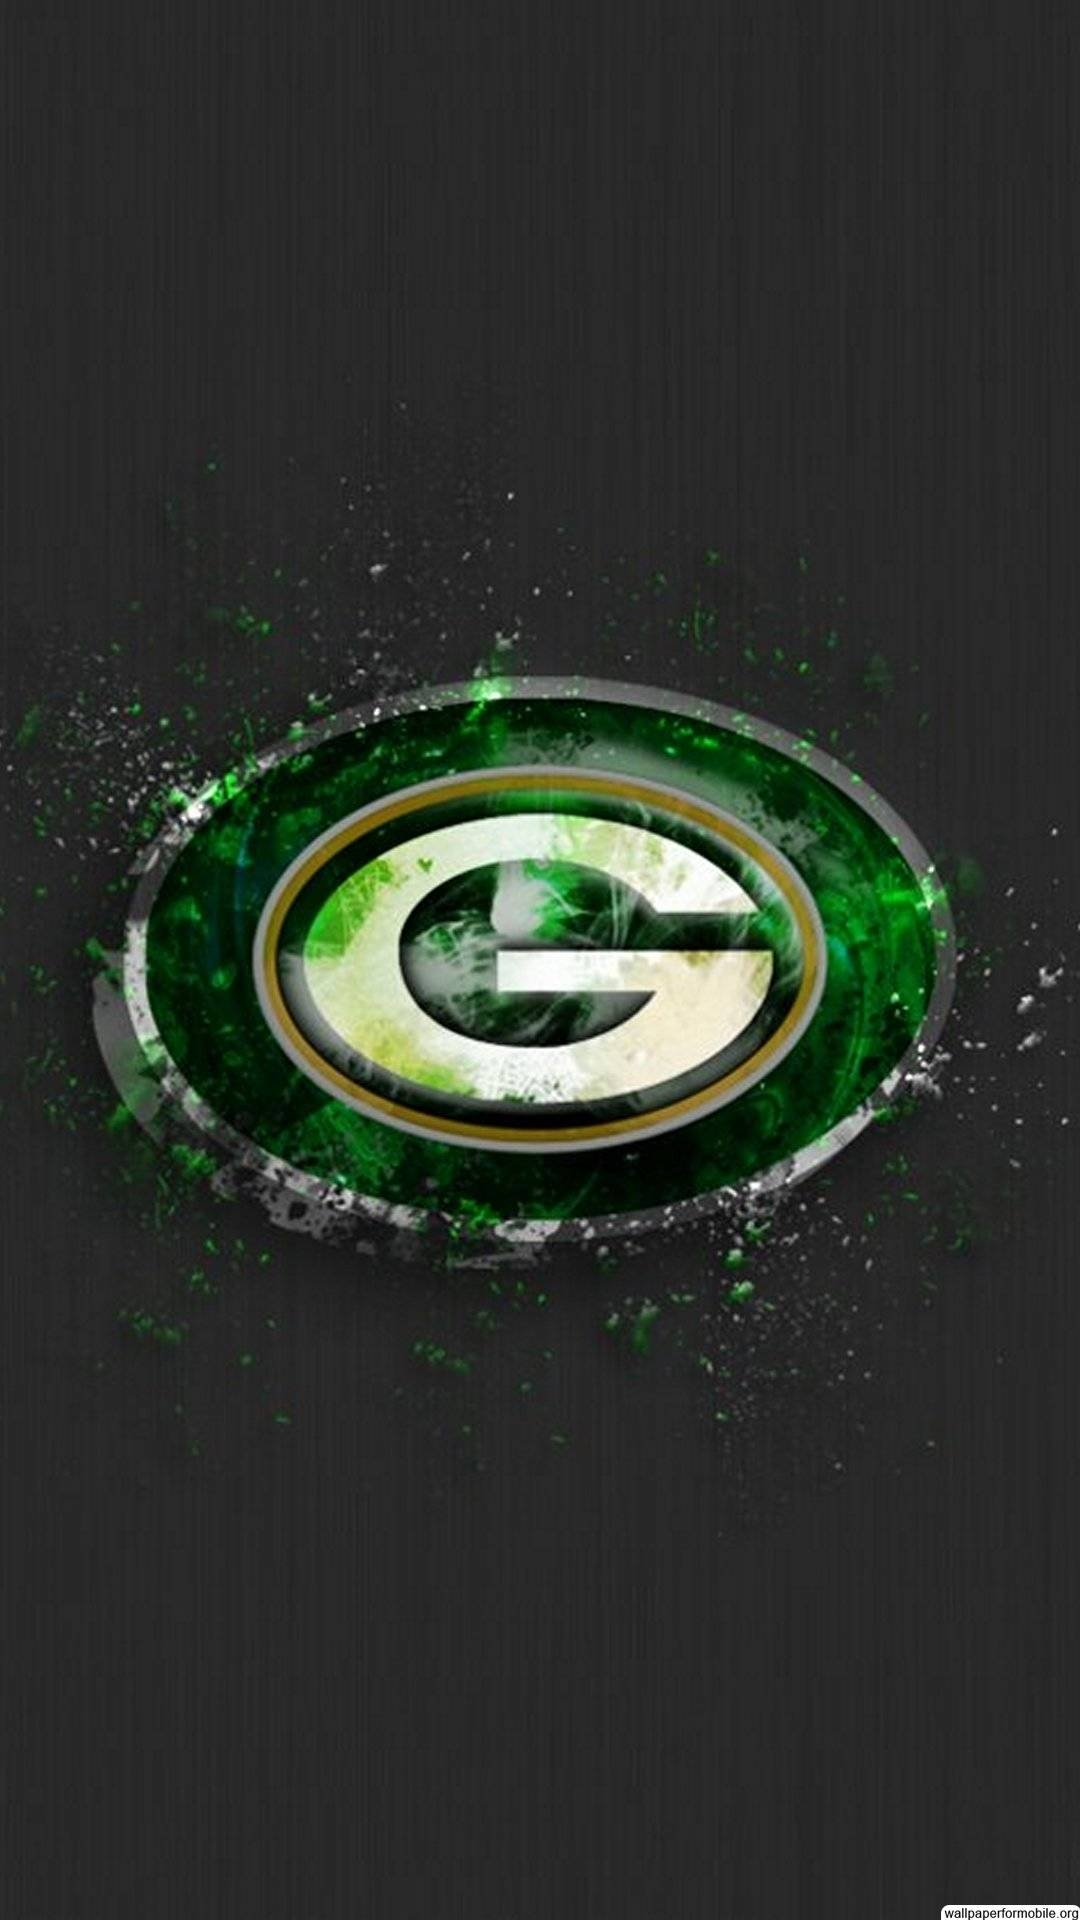 Title : green bay packers screensavers free downloads | mobile wallpapers. Dimension : 1080 x 1920. File Type : JPG/JPEG